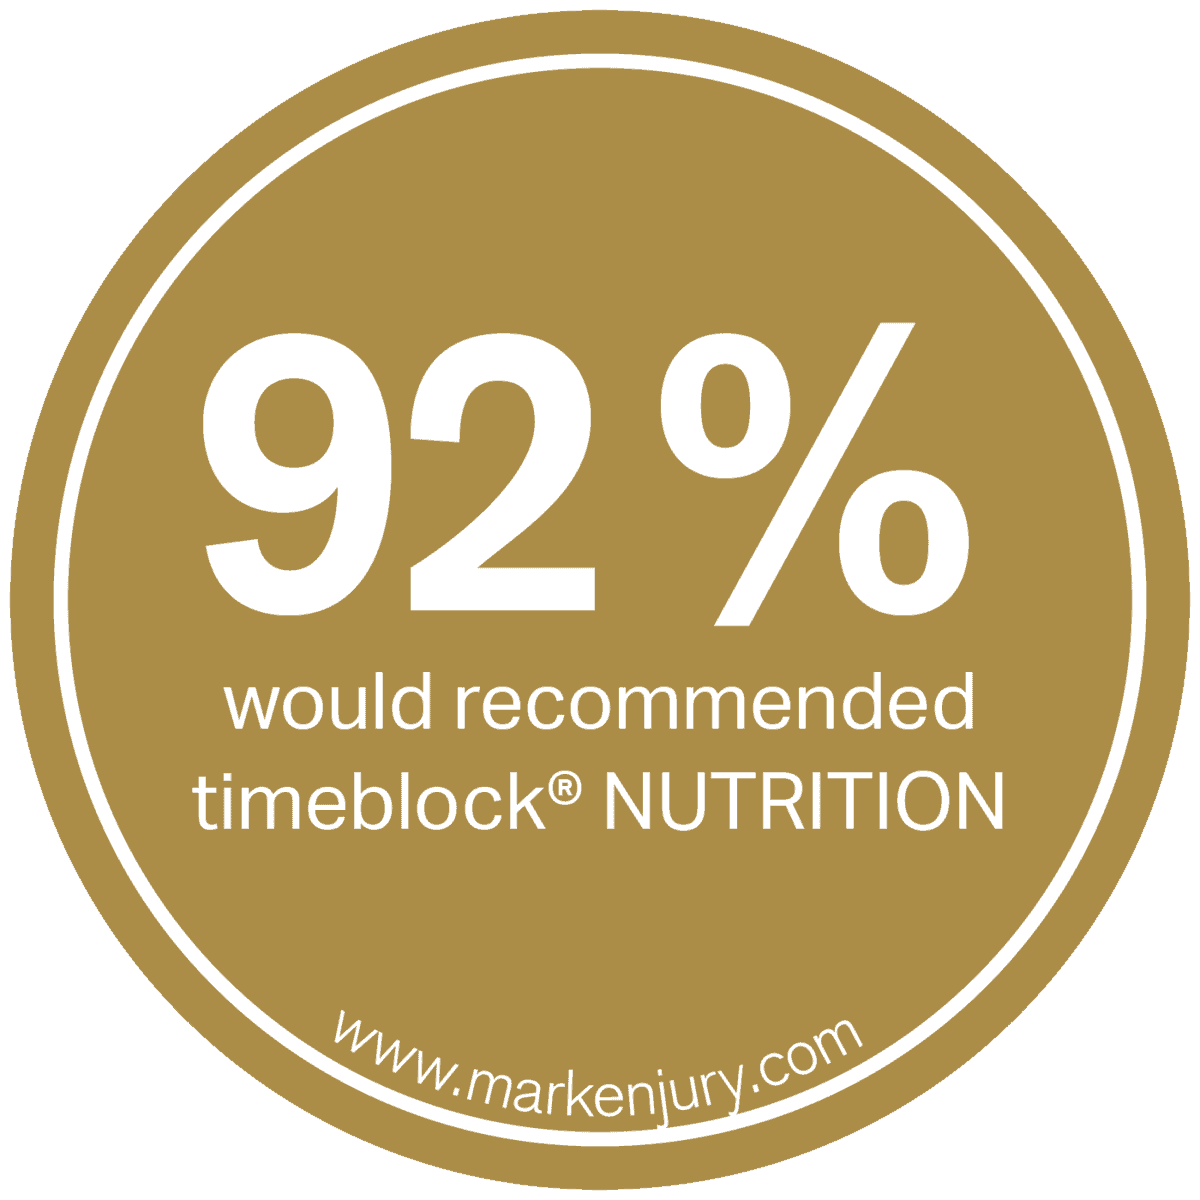 92% of clients would recommend timeblock nutrition products